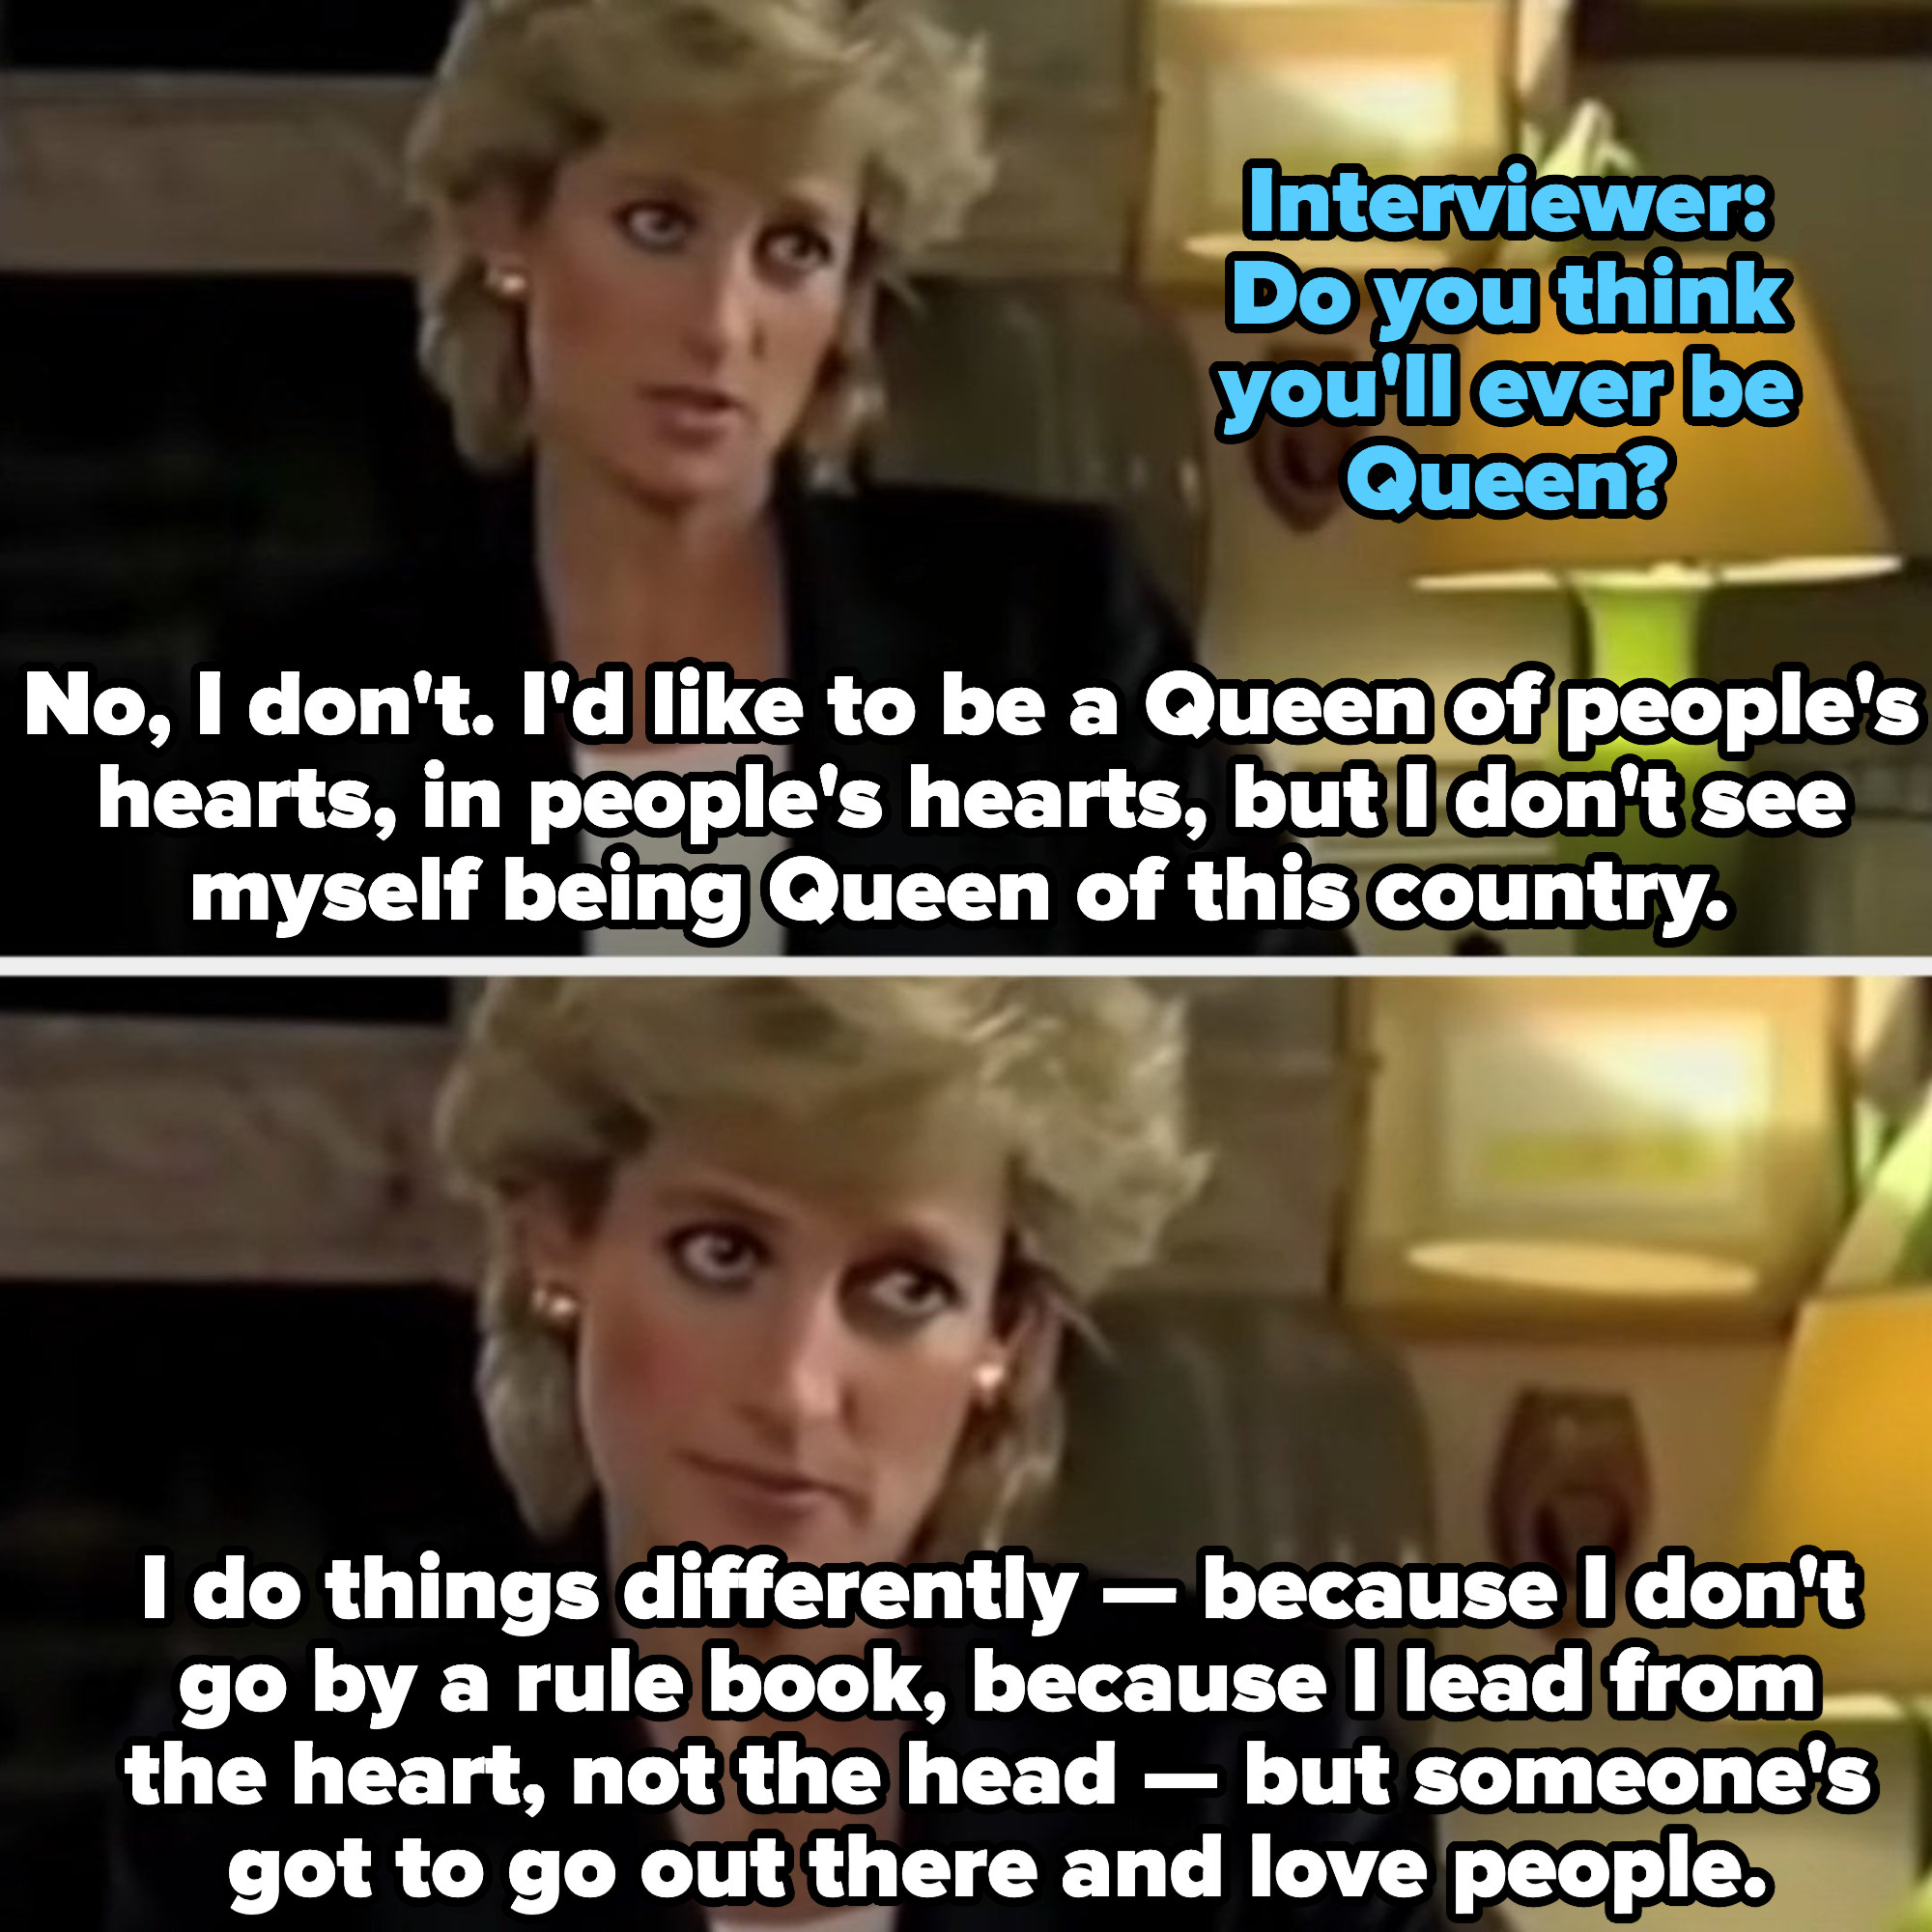 Princess Diana describing how she'll never be Queen because she leads from the heart and not her head